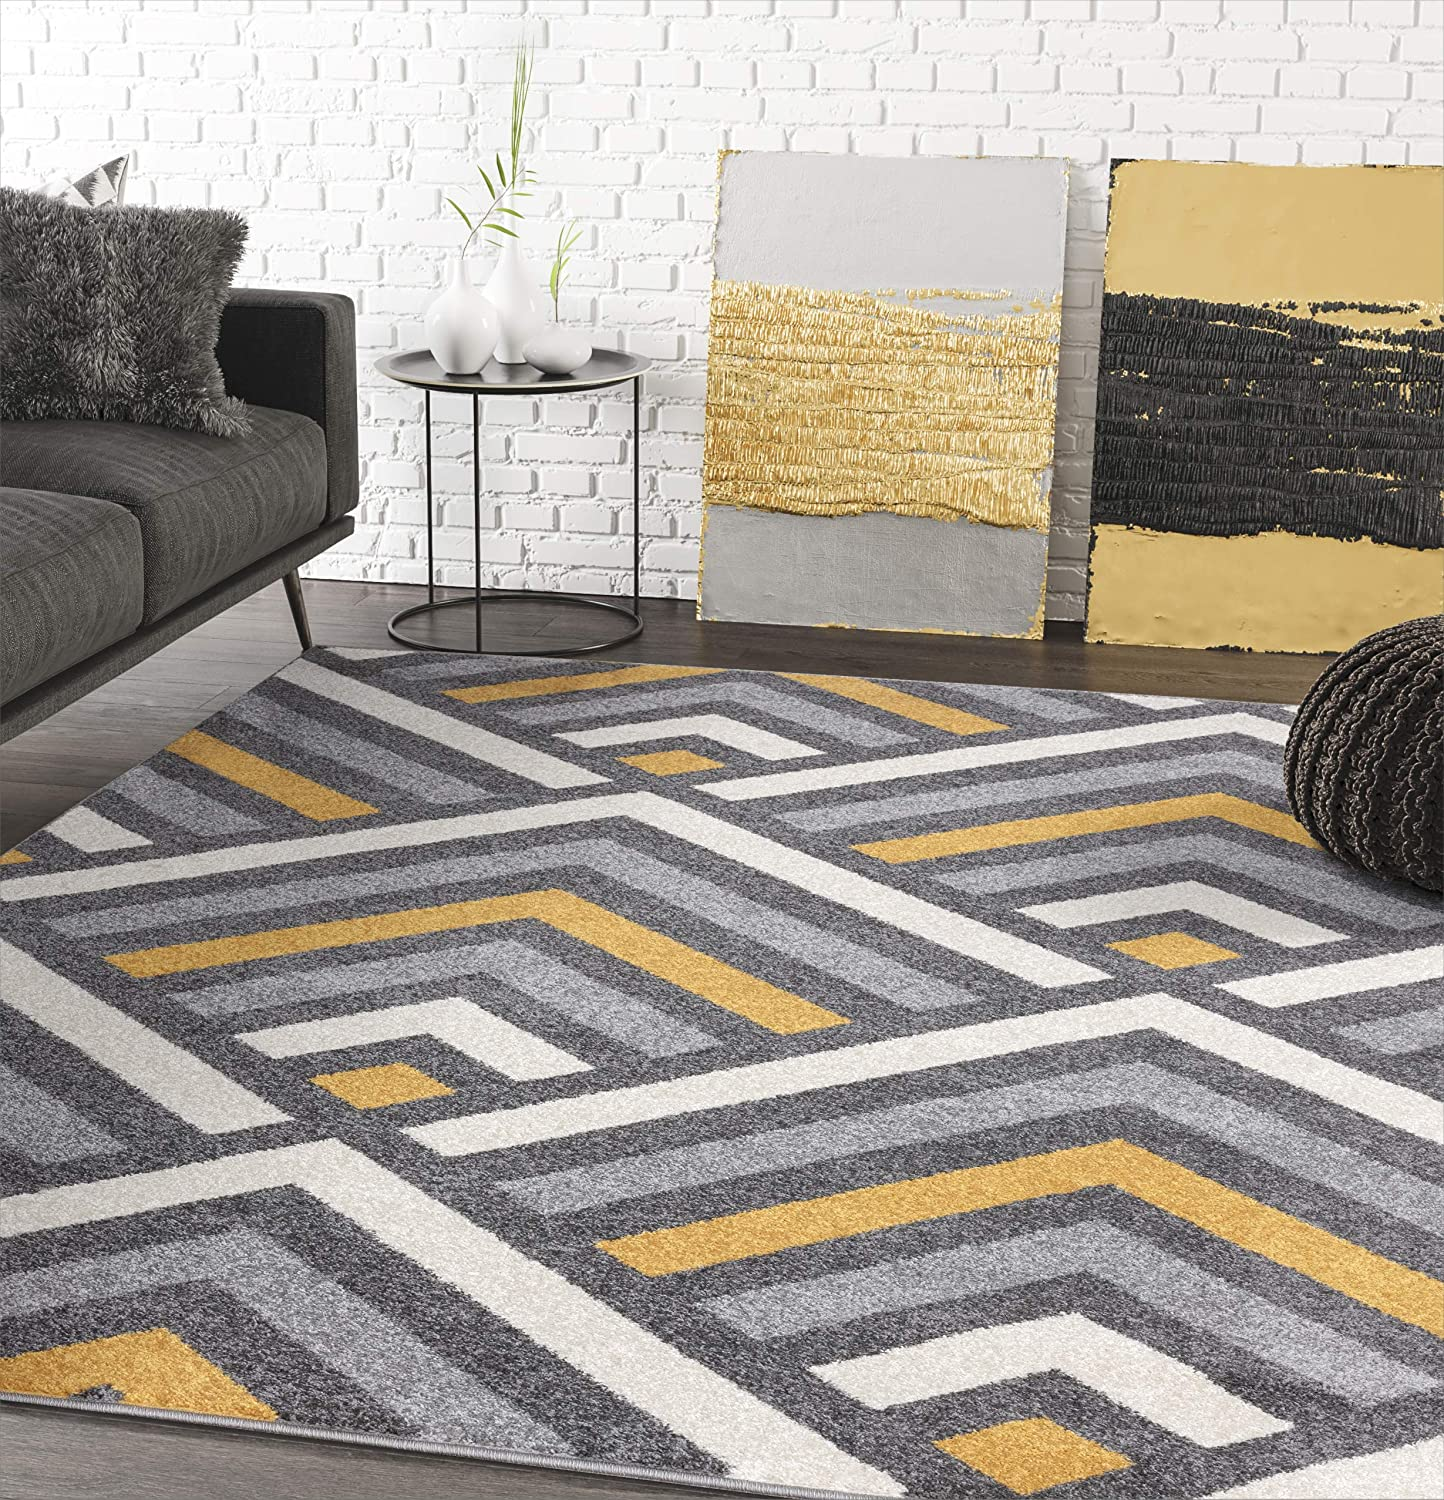 5 3 X 7 6 Modern Yellow Grey Beige Geometric Chevron Area Rug Abani Rugs Laguna Collection Contemporary Accent Rug Kitchen Dining